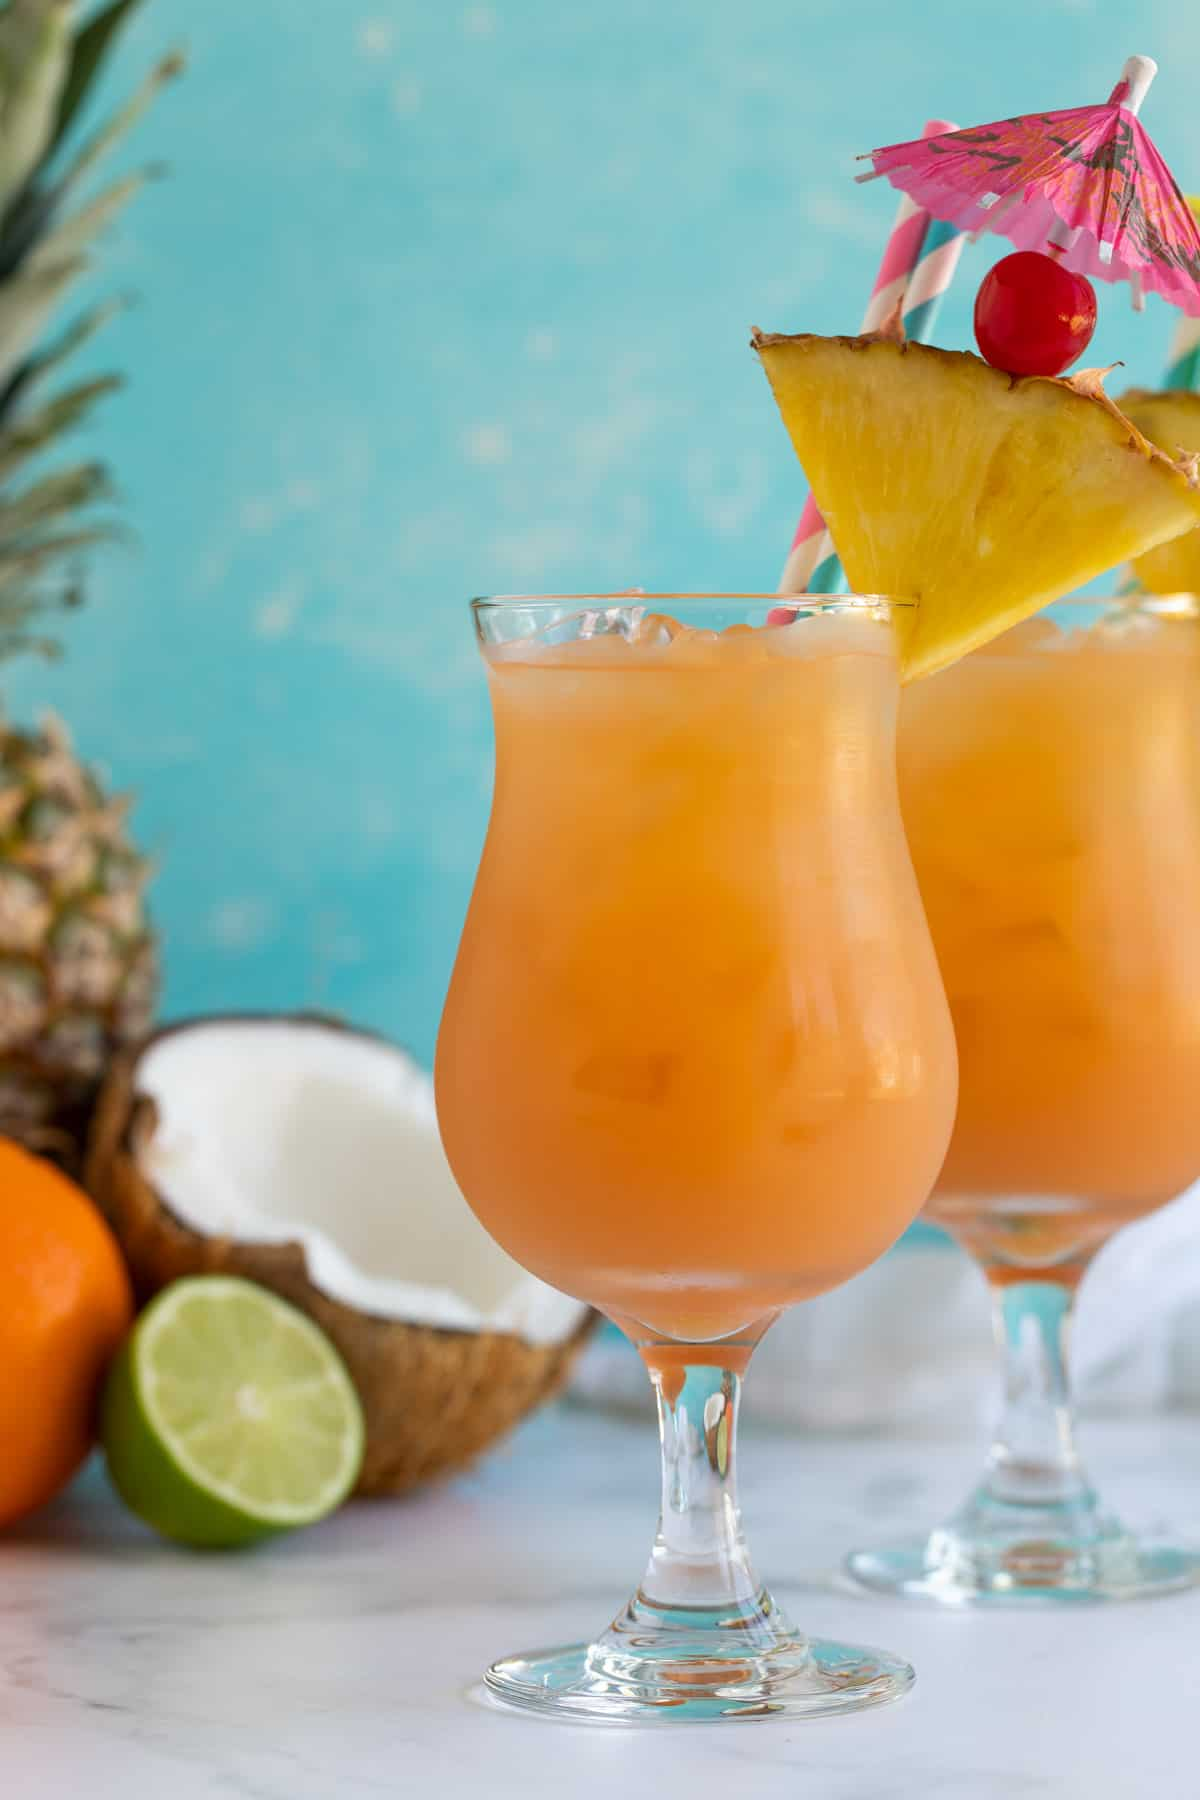 Two glasses of rum punch garnished with pineapple, cherries and umbrellas.